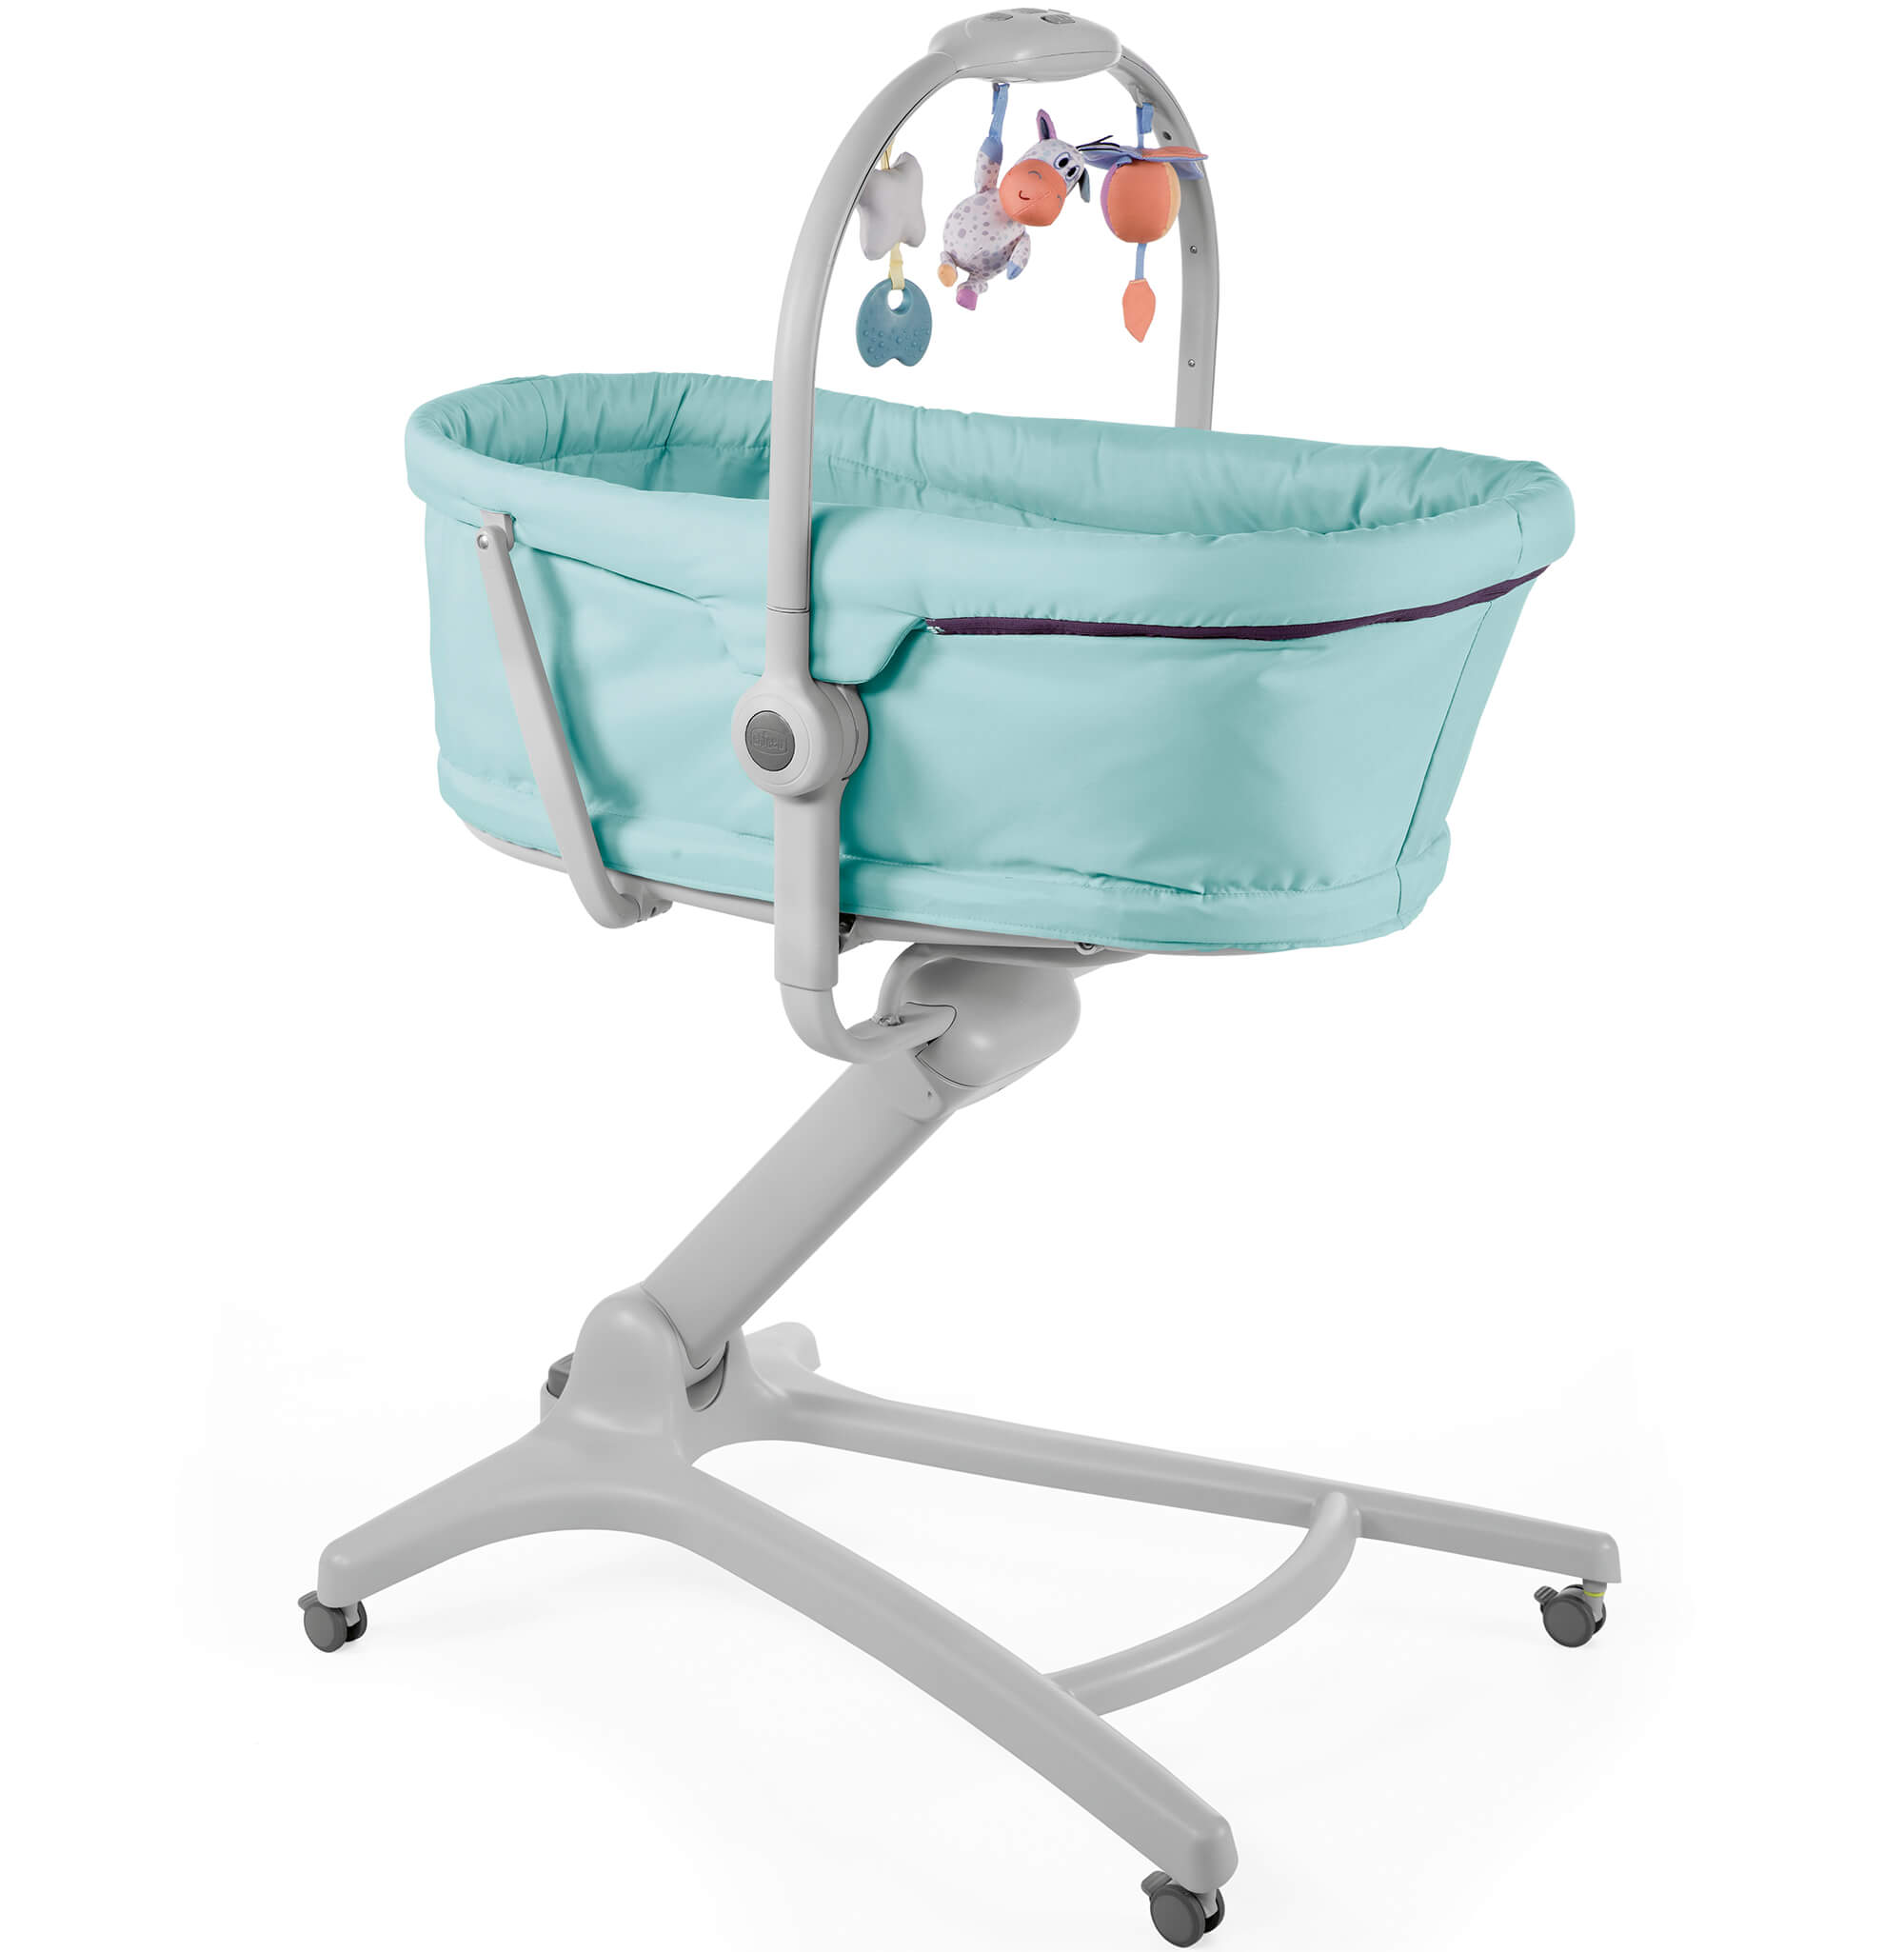 Chicco BABY HUG 4 in 1 AQUARELLE Bassinet Reclining High Chair